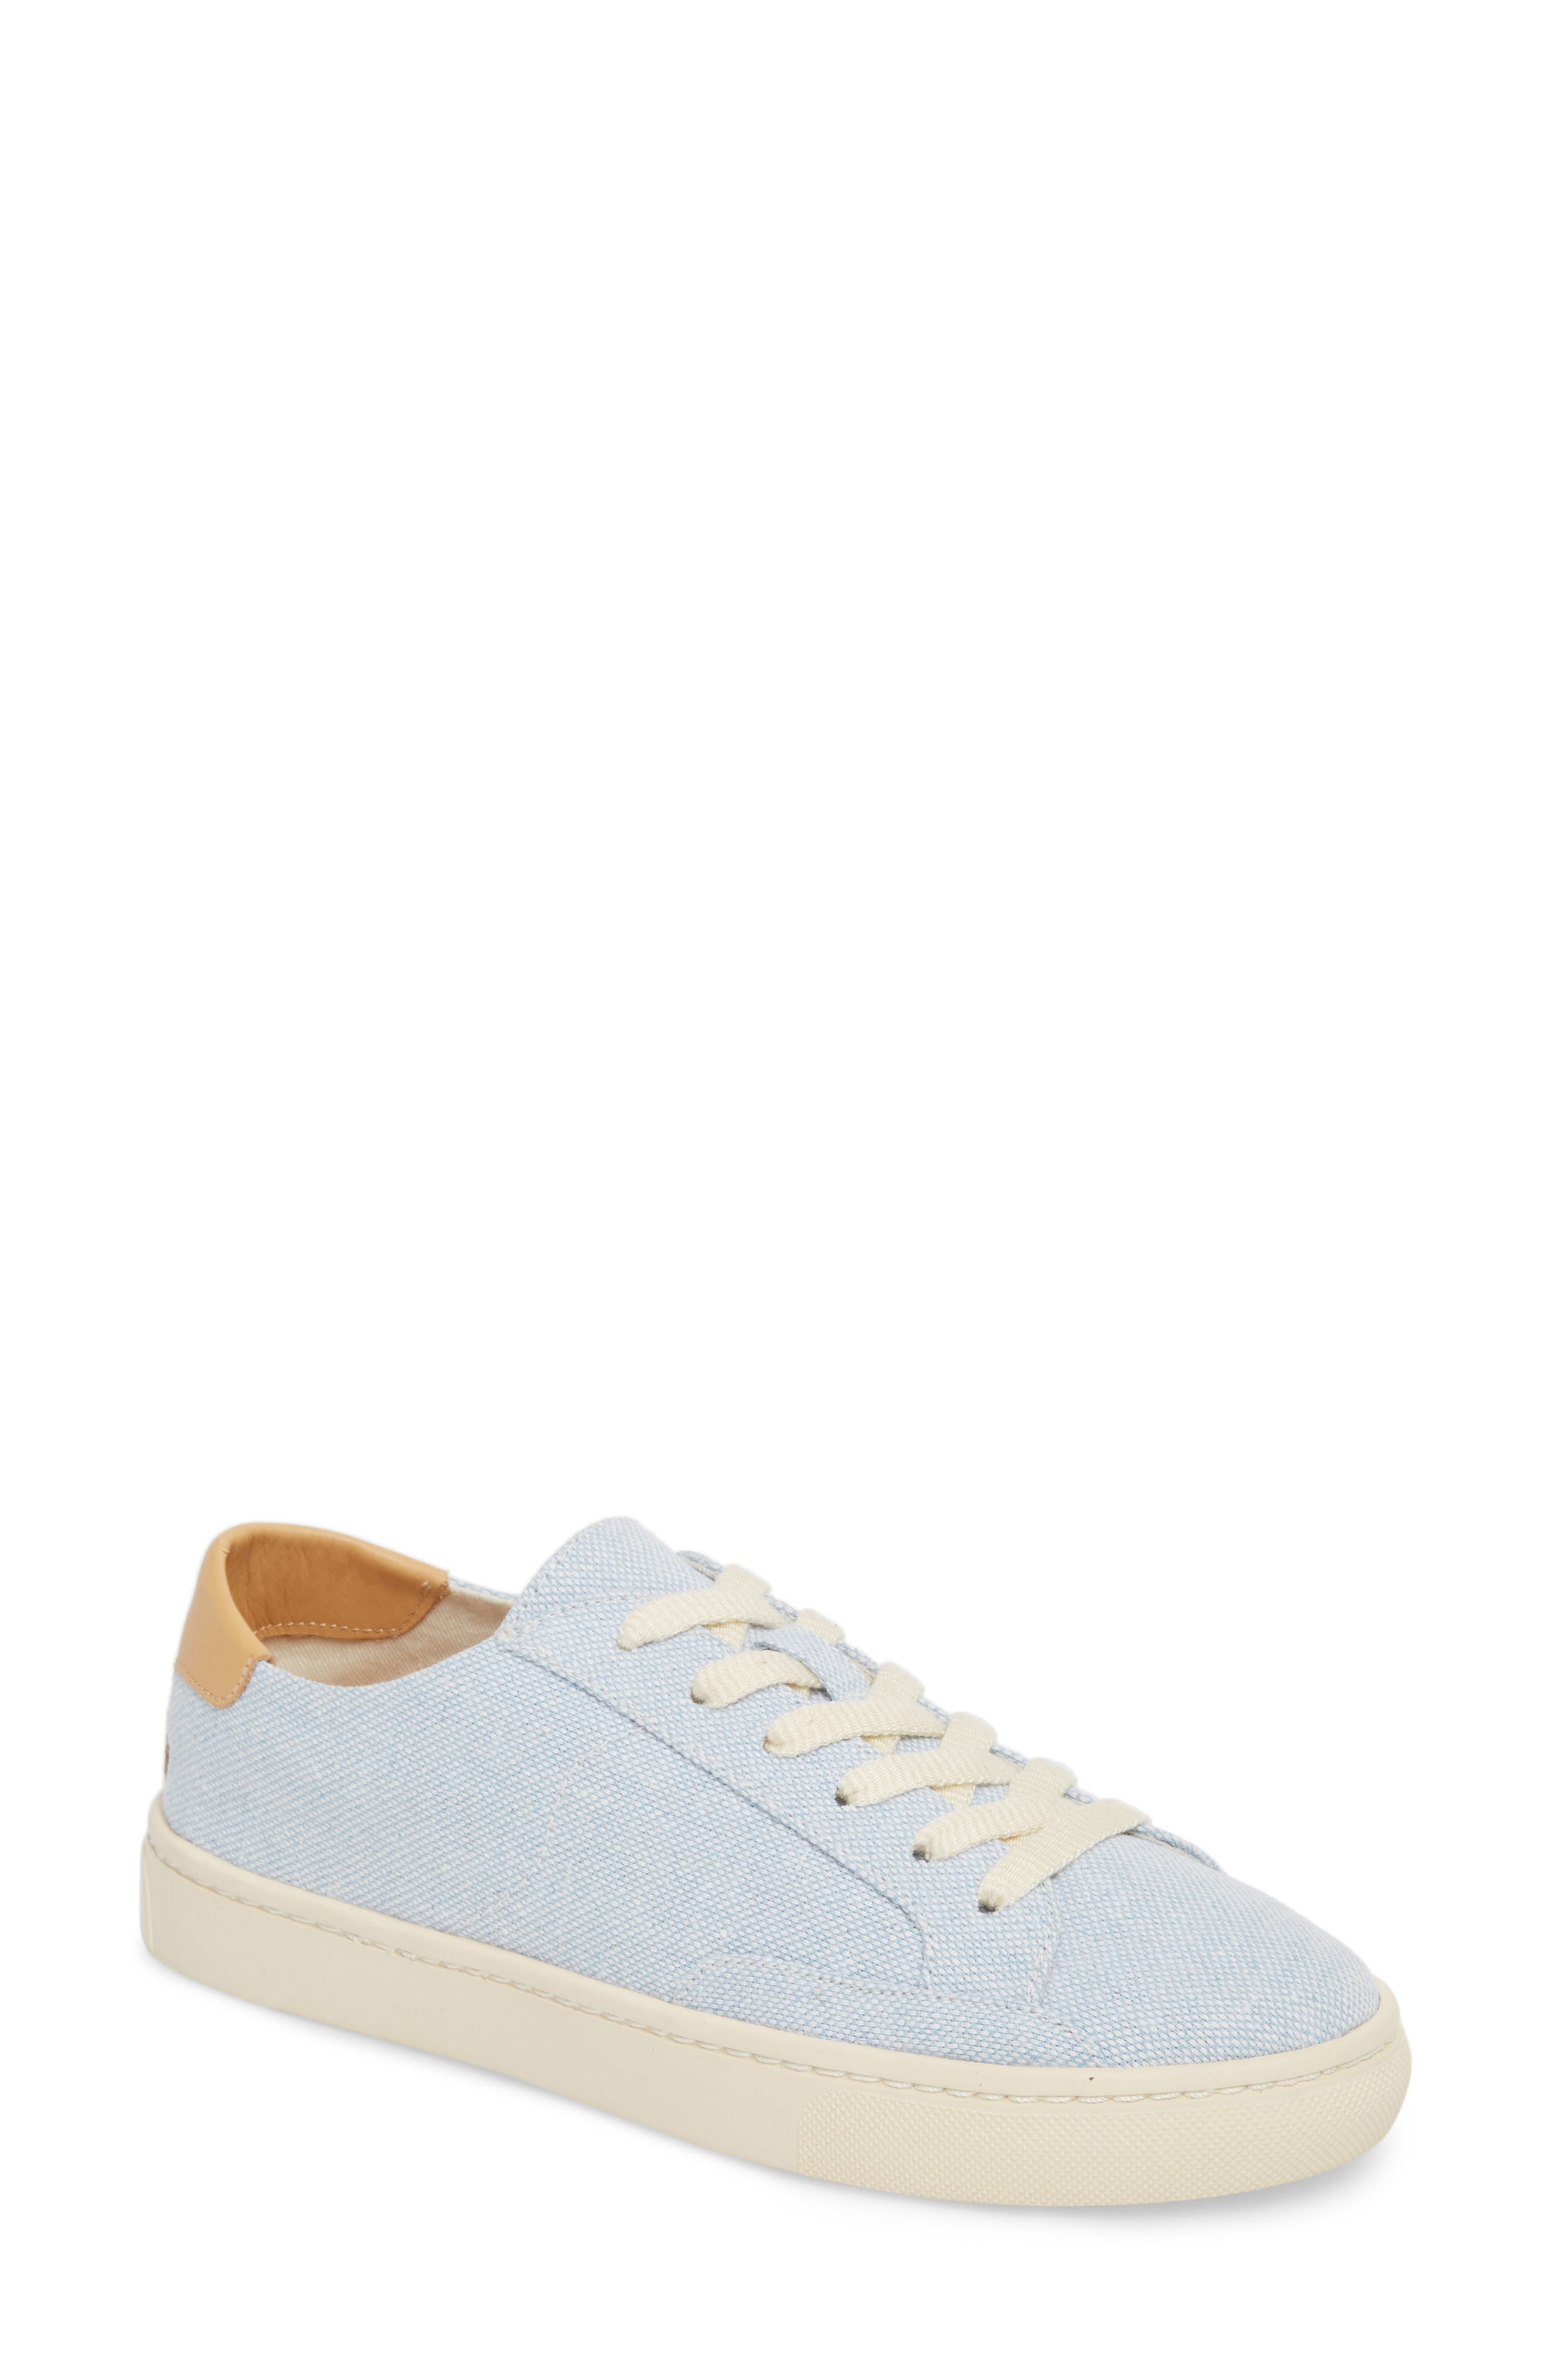 Ibiza Canvas Lace-Up Sneaker,                         Main,                         color, SKY BLUE